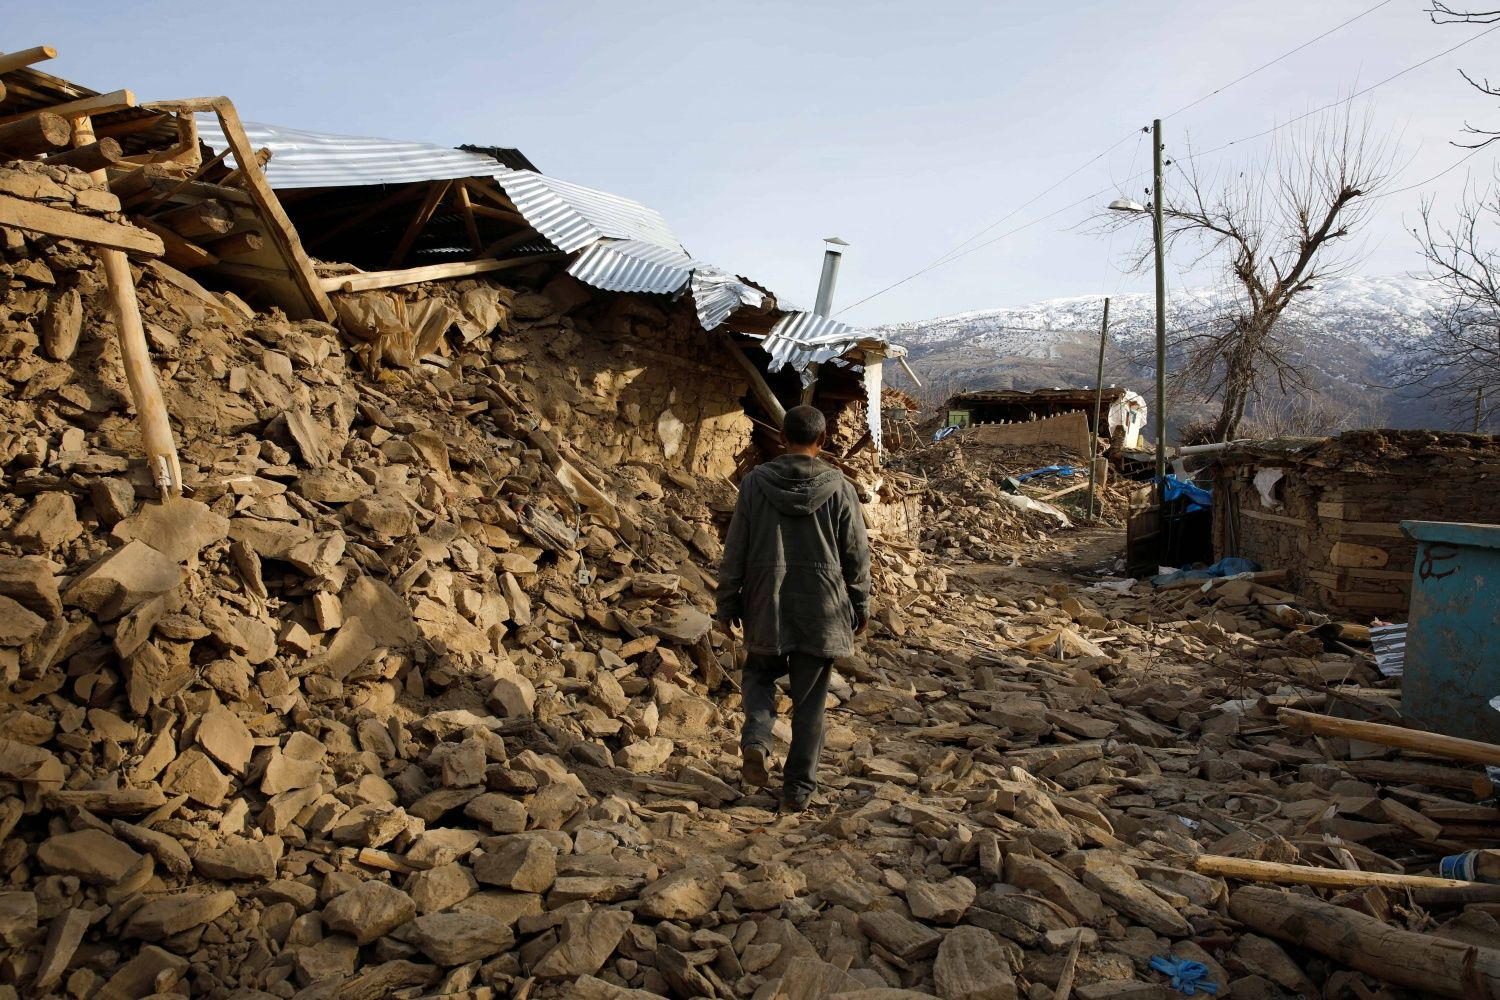 Turkey Prepares For Possible Istanbul Earthquake Environment Nature World News Istanbul Earthquake World